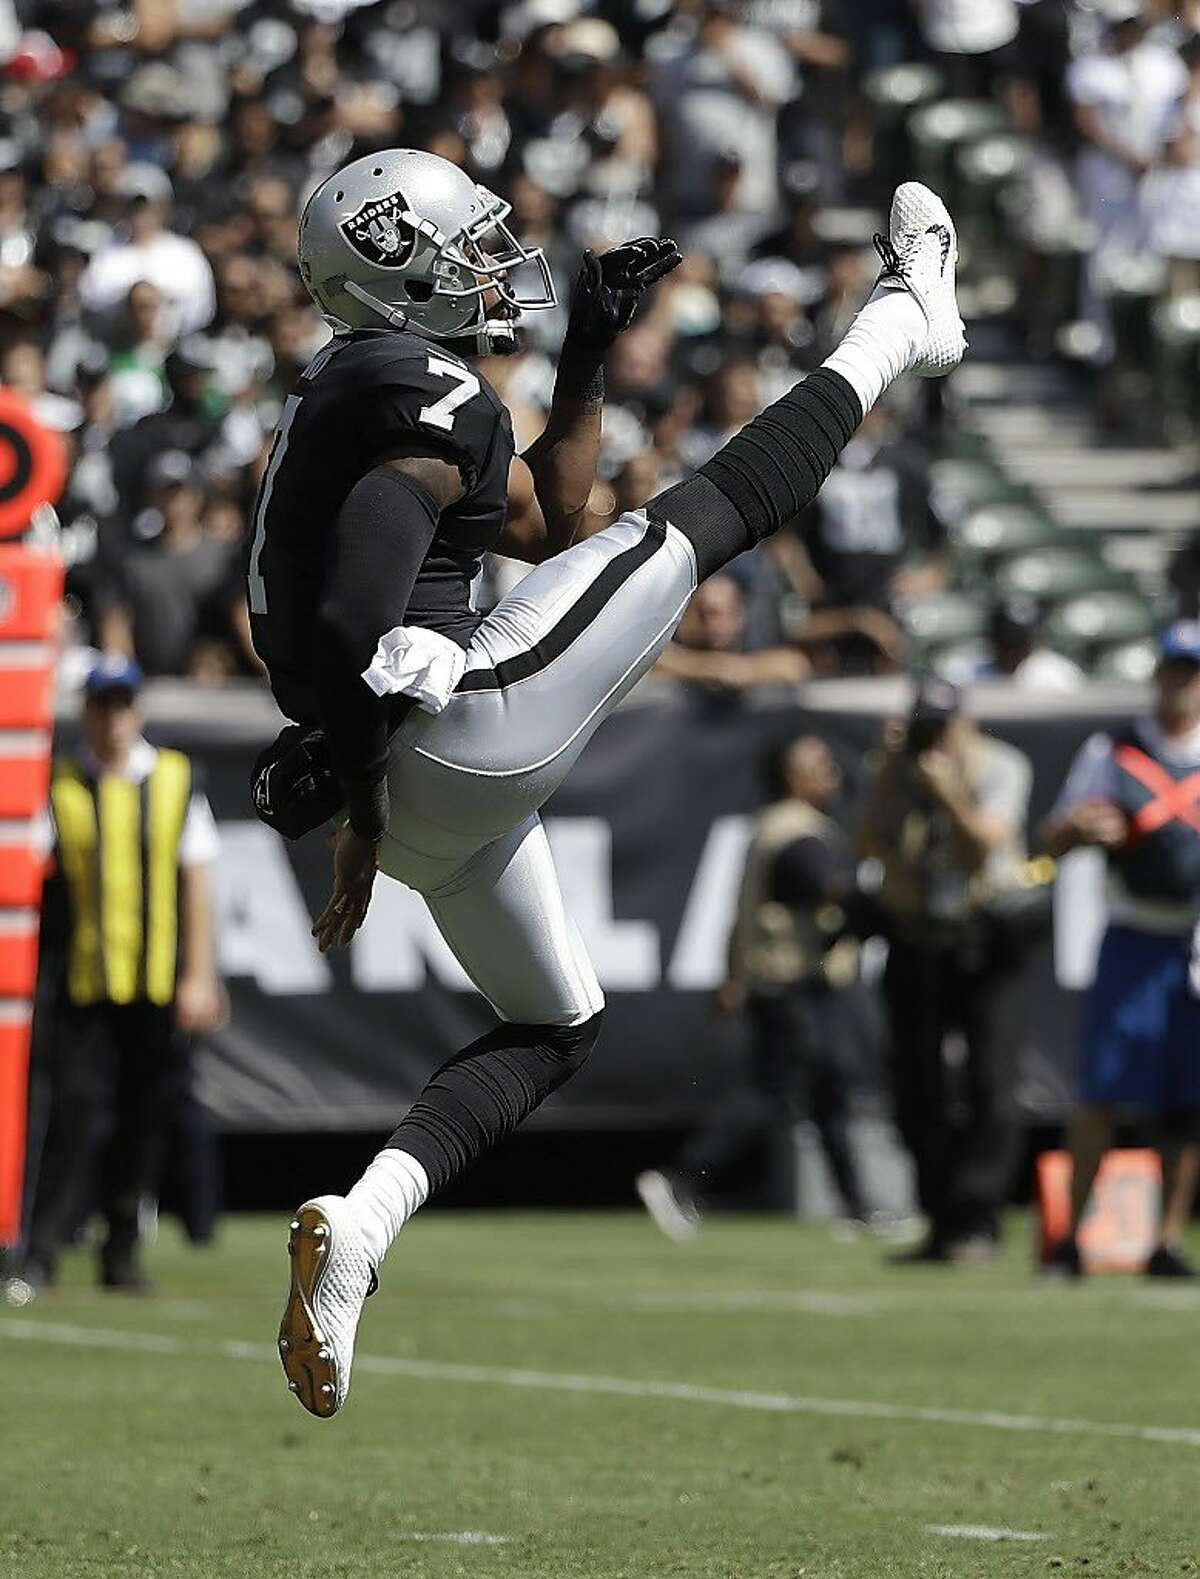 Oakland Raiders punter Marquette King (7) against the New York Jets during an NFL football game in Oakland, Calif., Sunday, Sept. 17, 2017. (AP Photo/Marcio Jose Sanchez)